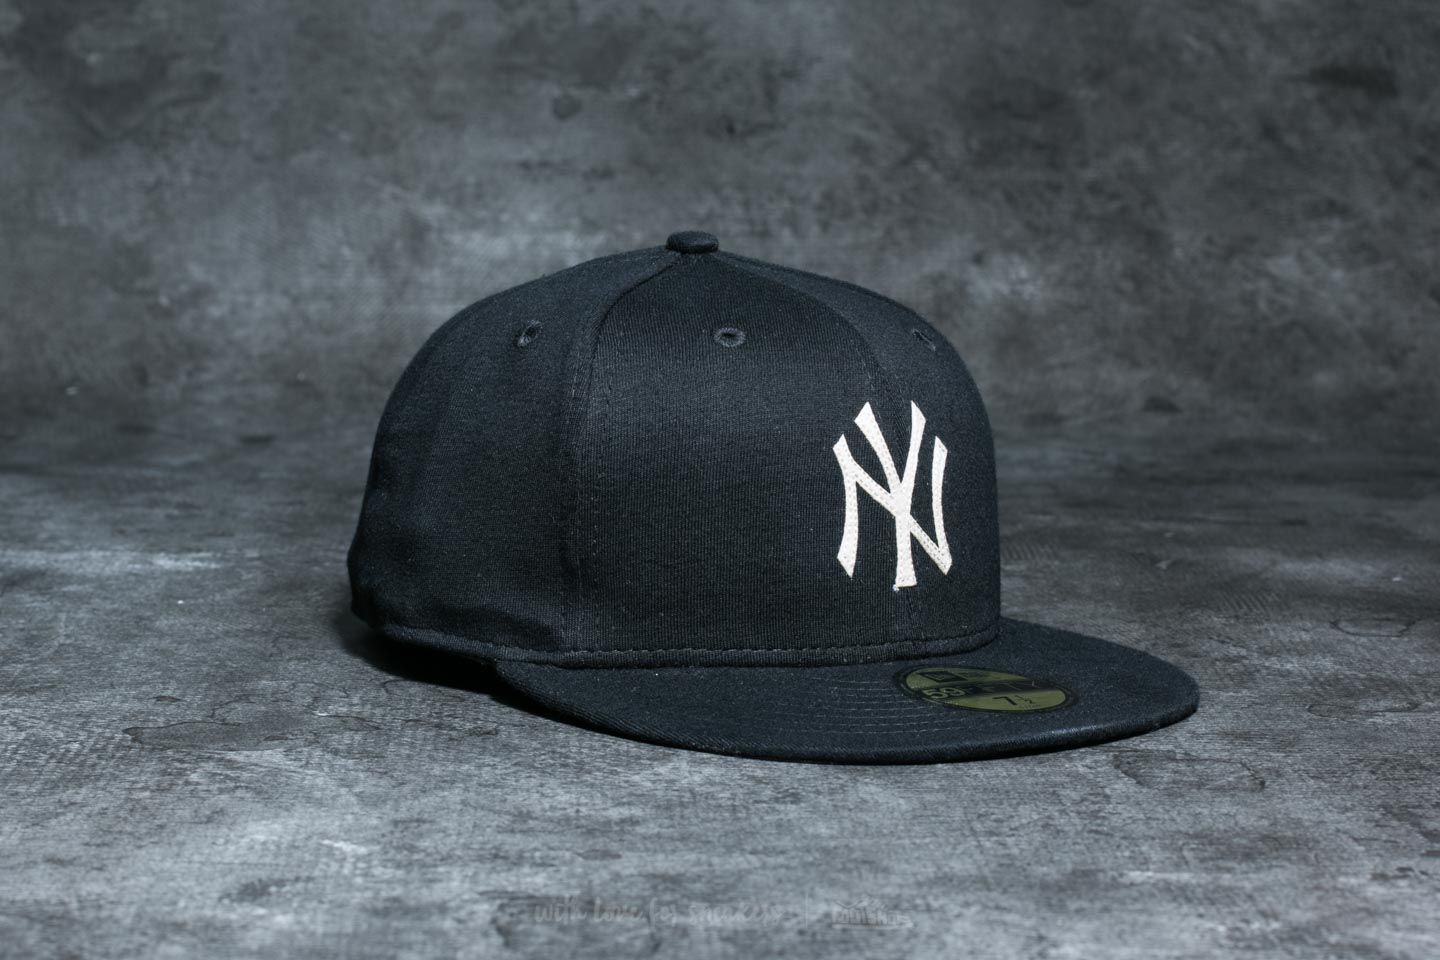 sports shoes a87bf deb4d ... shop new era 59fifty the lounge new york yankees cap black white at a great  price